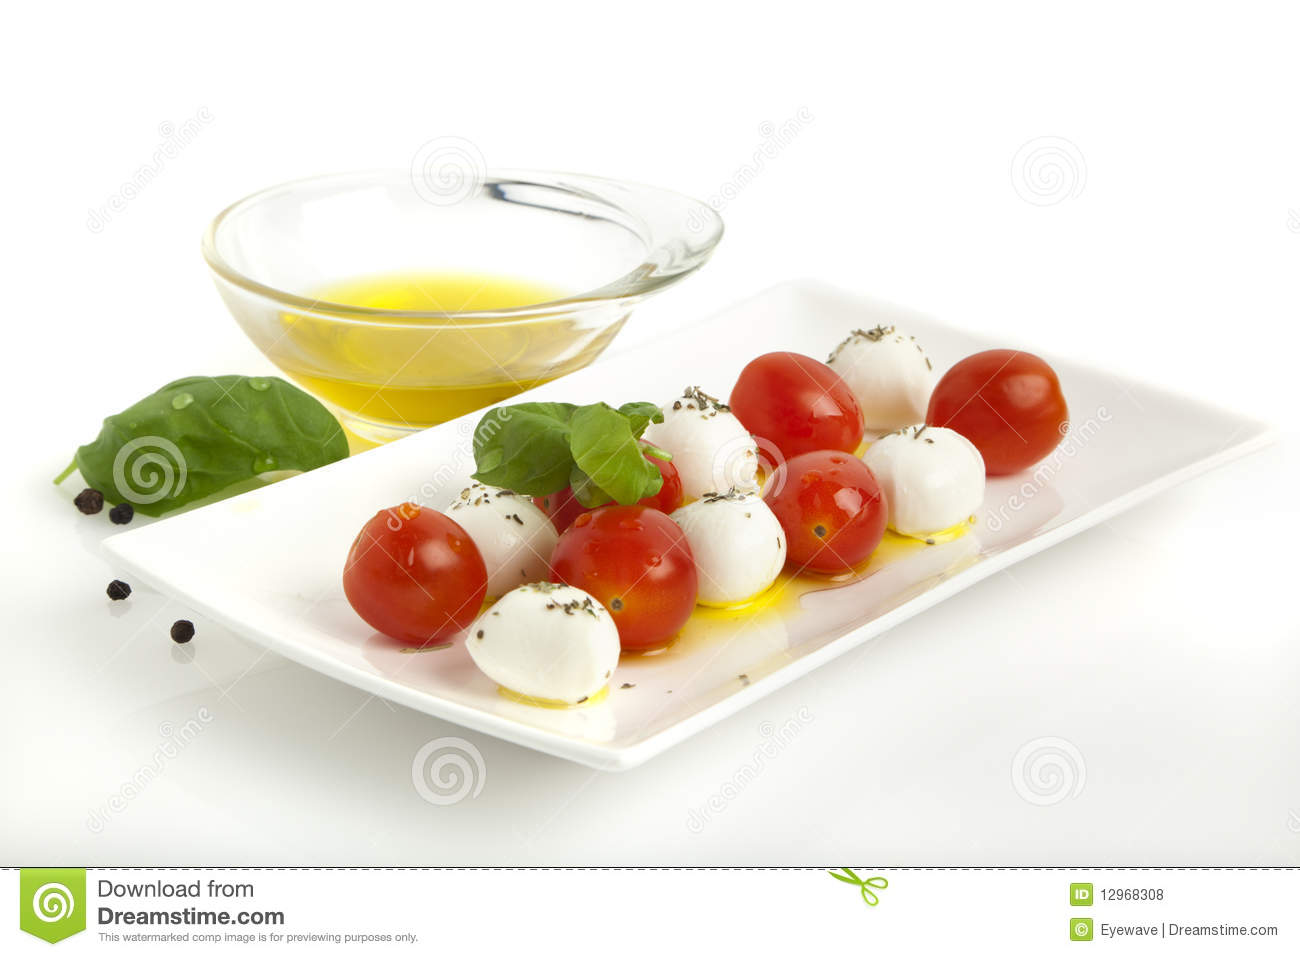 How to Make Caprese Salad recommendations